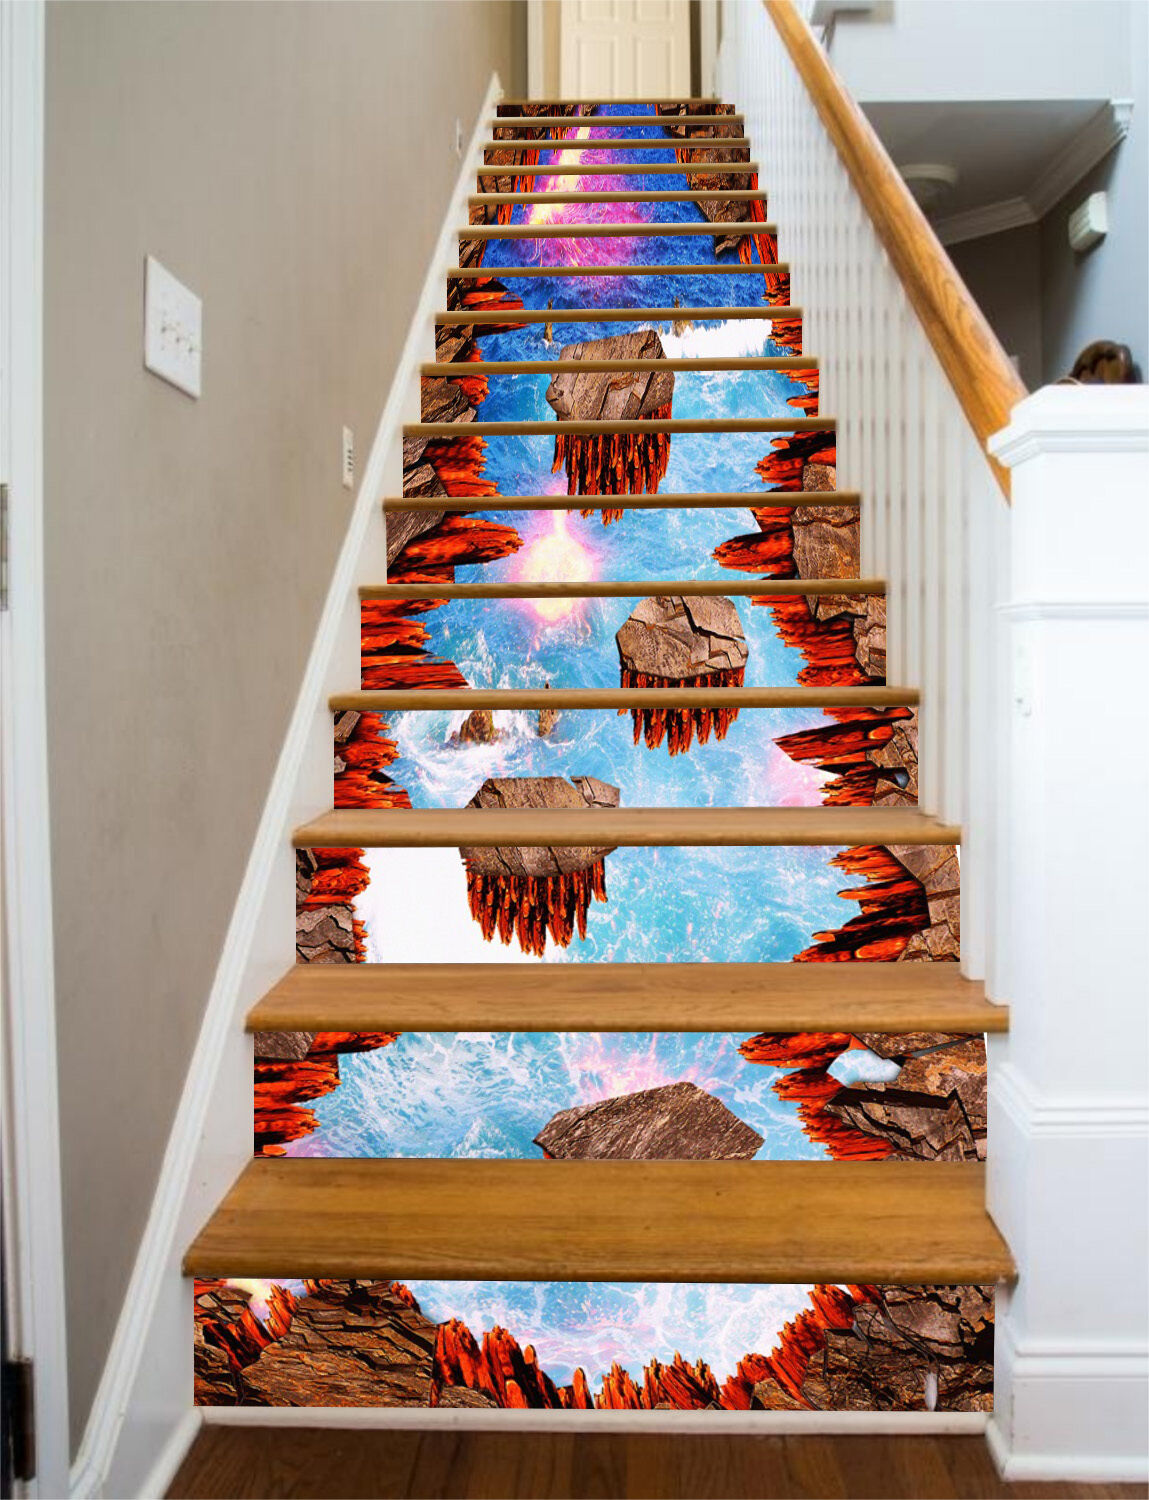 3D Sky Islands Stair Risers Decoration Photo Mural Vinyl Decal Wallpaper CA